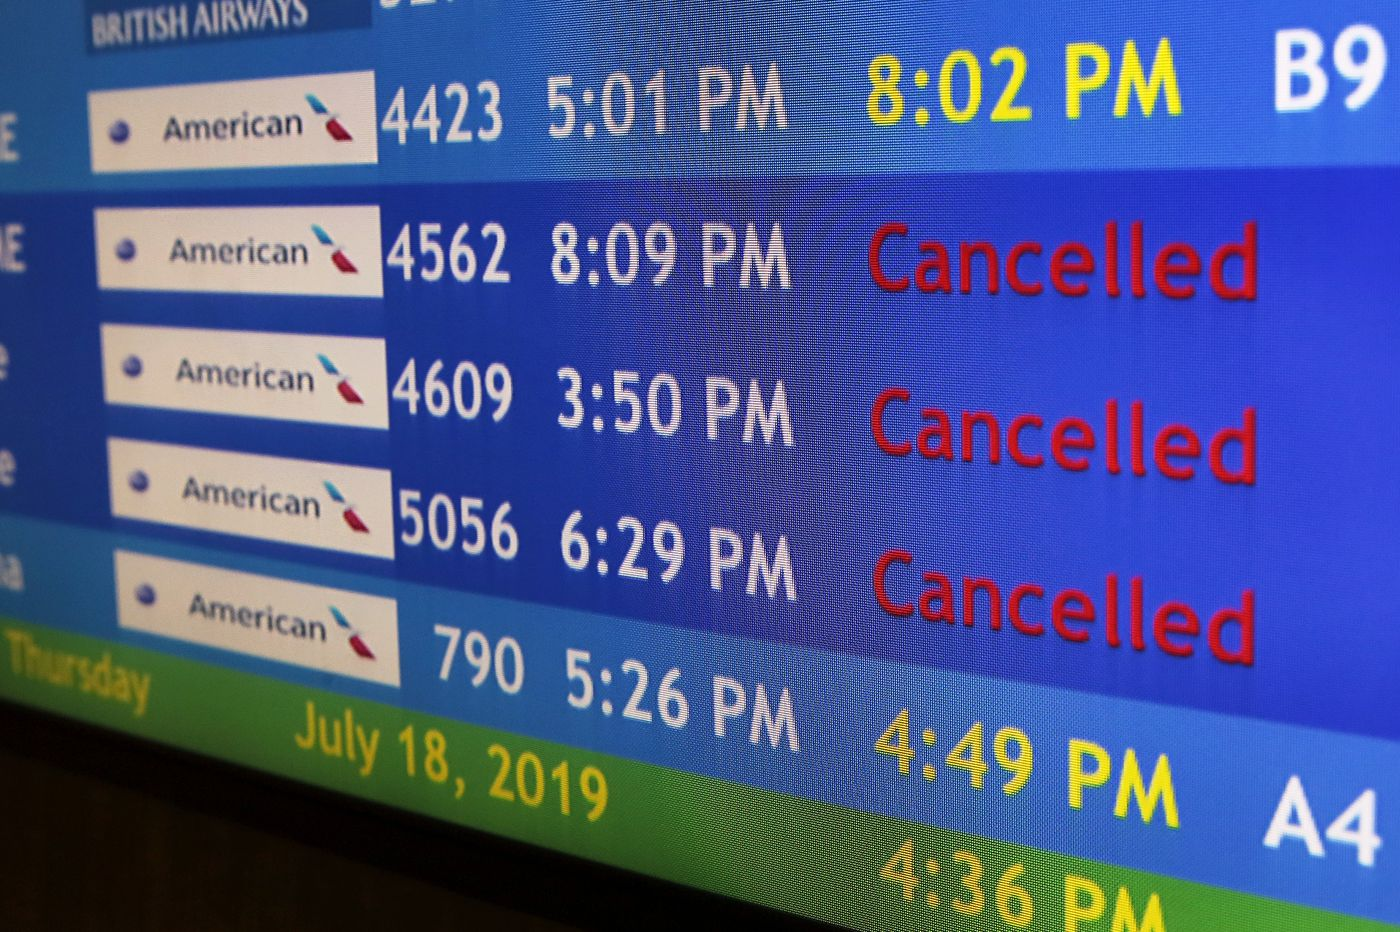 American Airlines' June flight cancellations soared in Philly